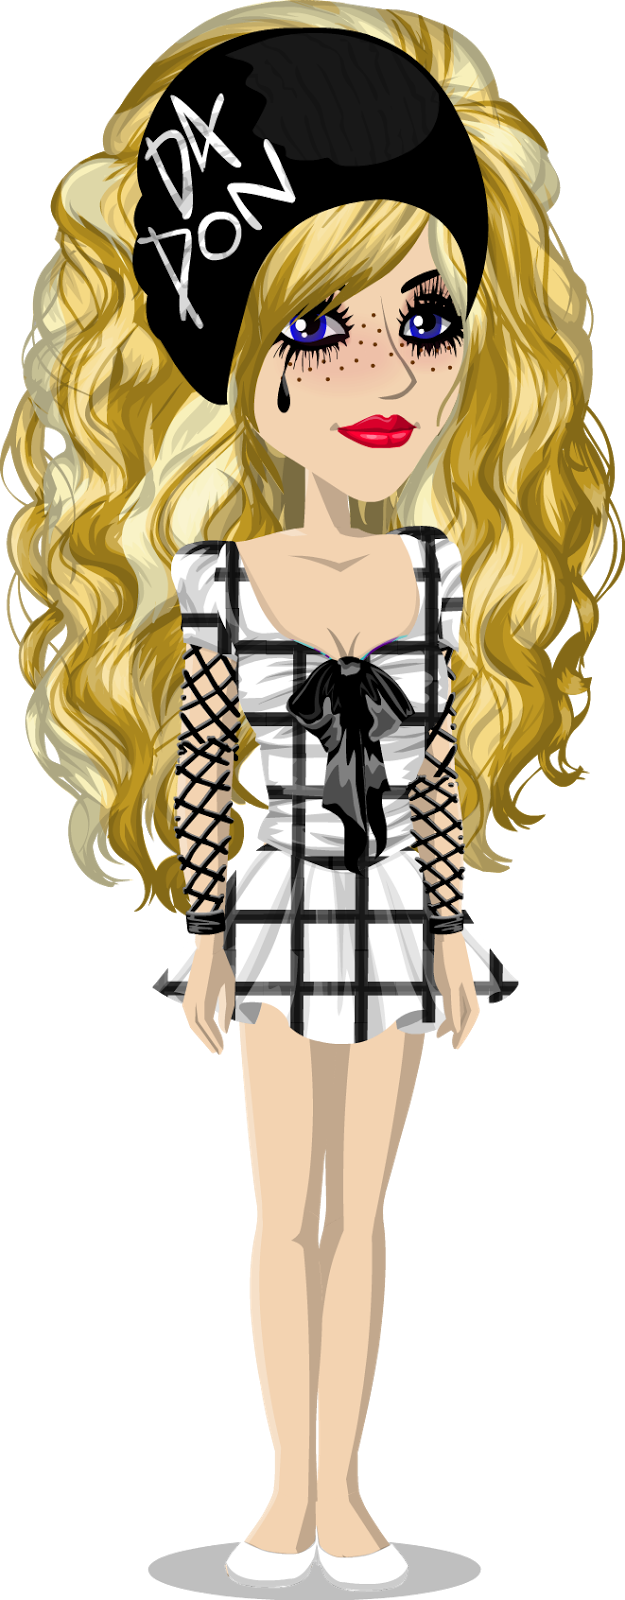 how to look pretty on msp without being vip